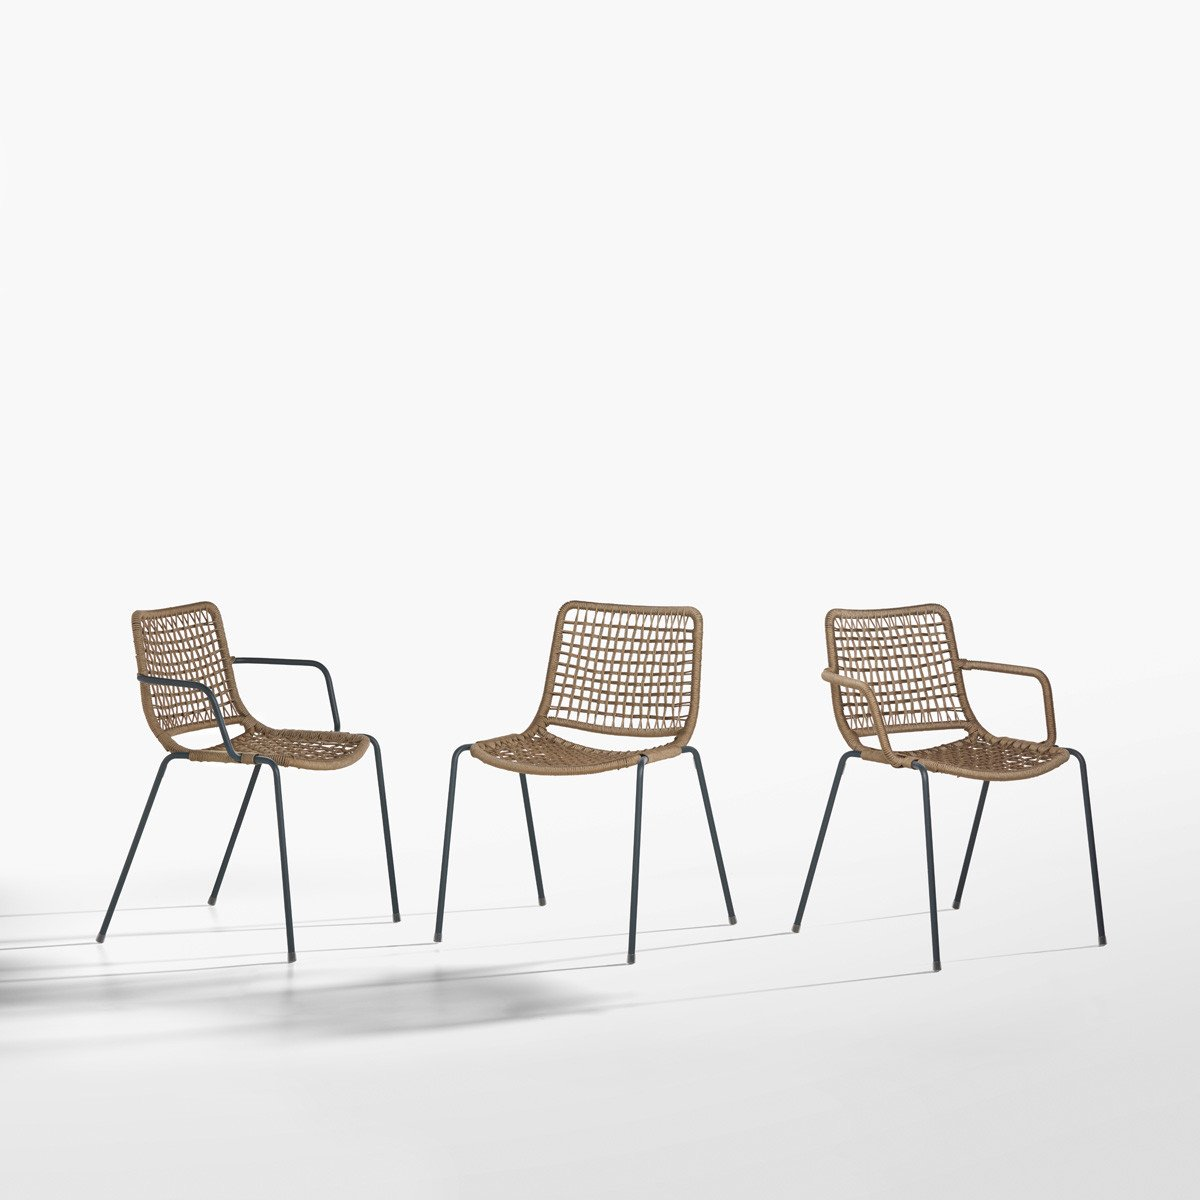 Egao Chair from Potocco, designed by Toan Nguyen